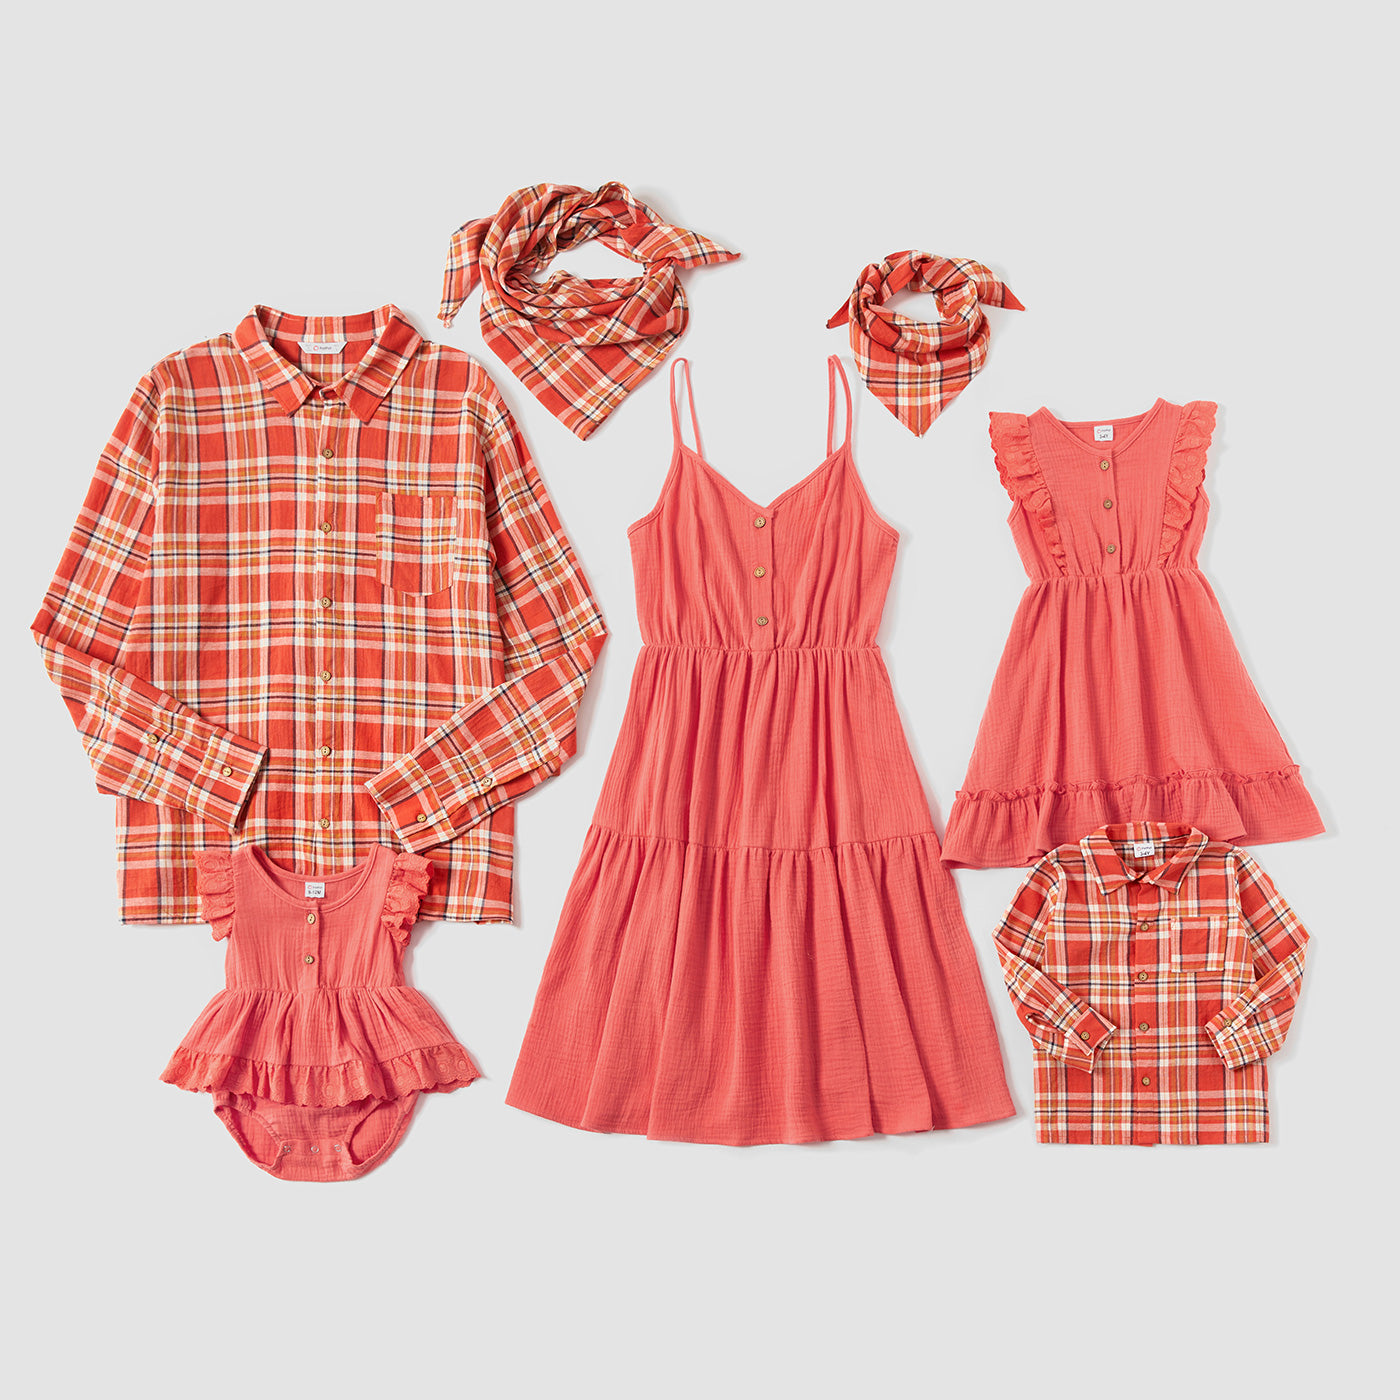 Mosaic Family Matching 100% Cotton Sets in Autumn(Flounce Tank Dresses - Plaid Polo Shirts - Rompers)